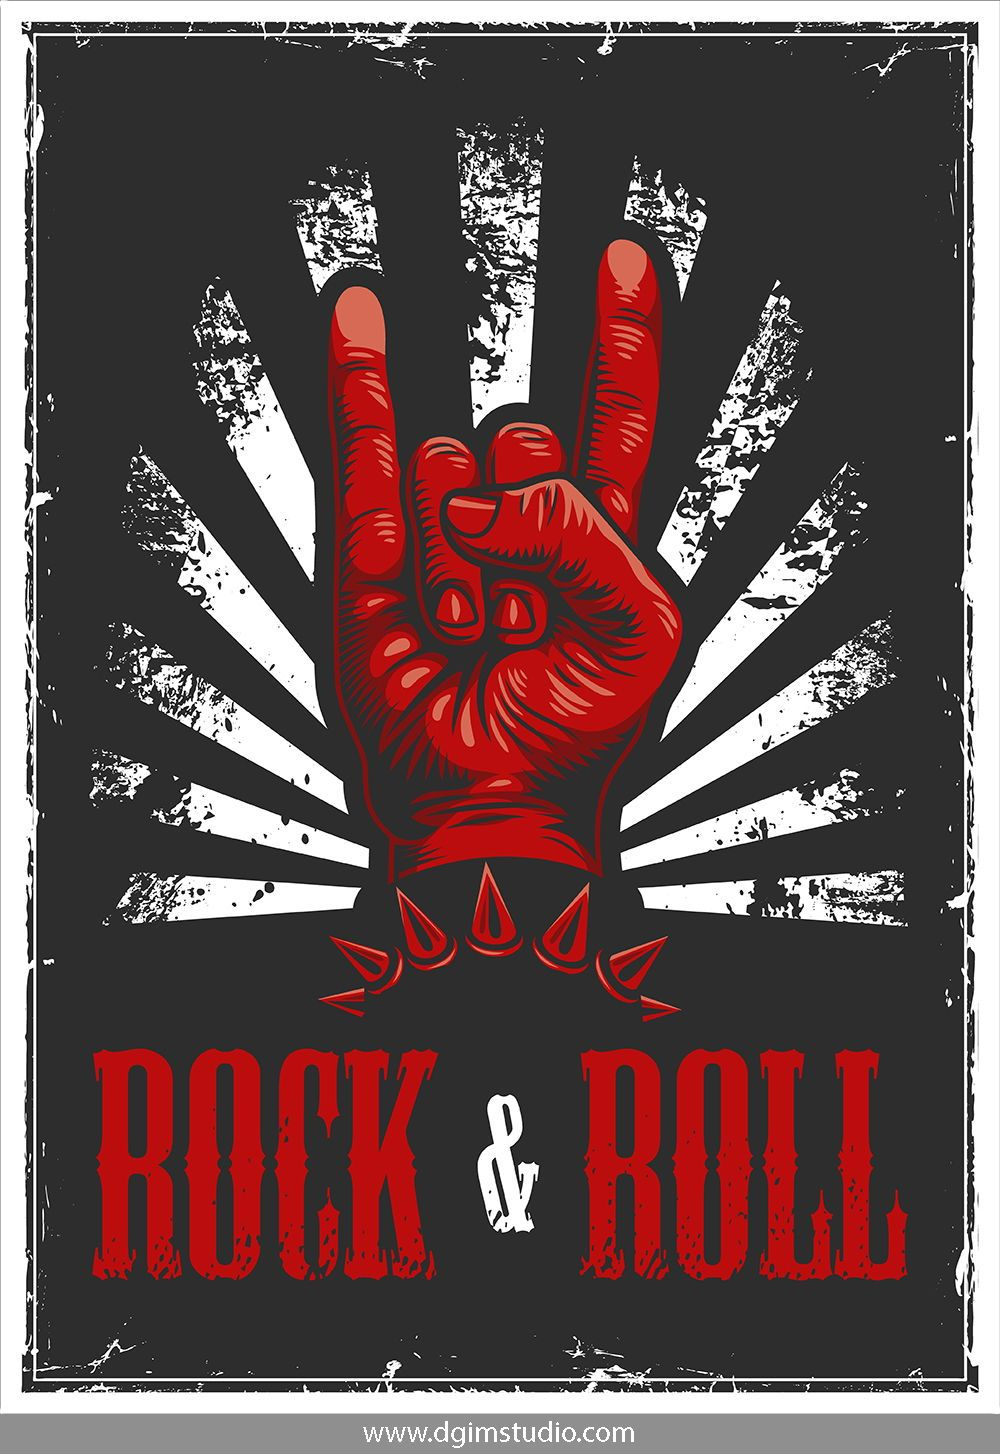 Rock Roll Designs Bundle Rock And Roll Sign Rock N Roll Art Rock Band Posters